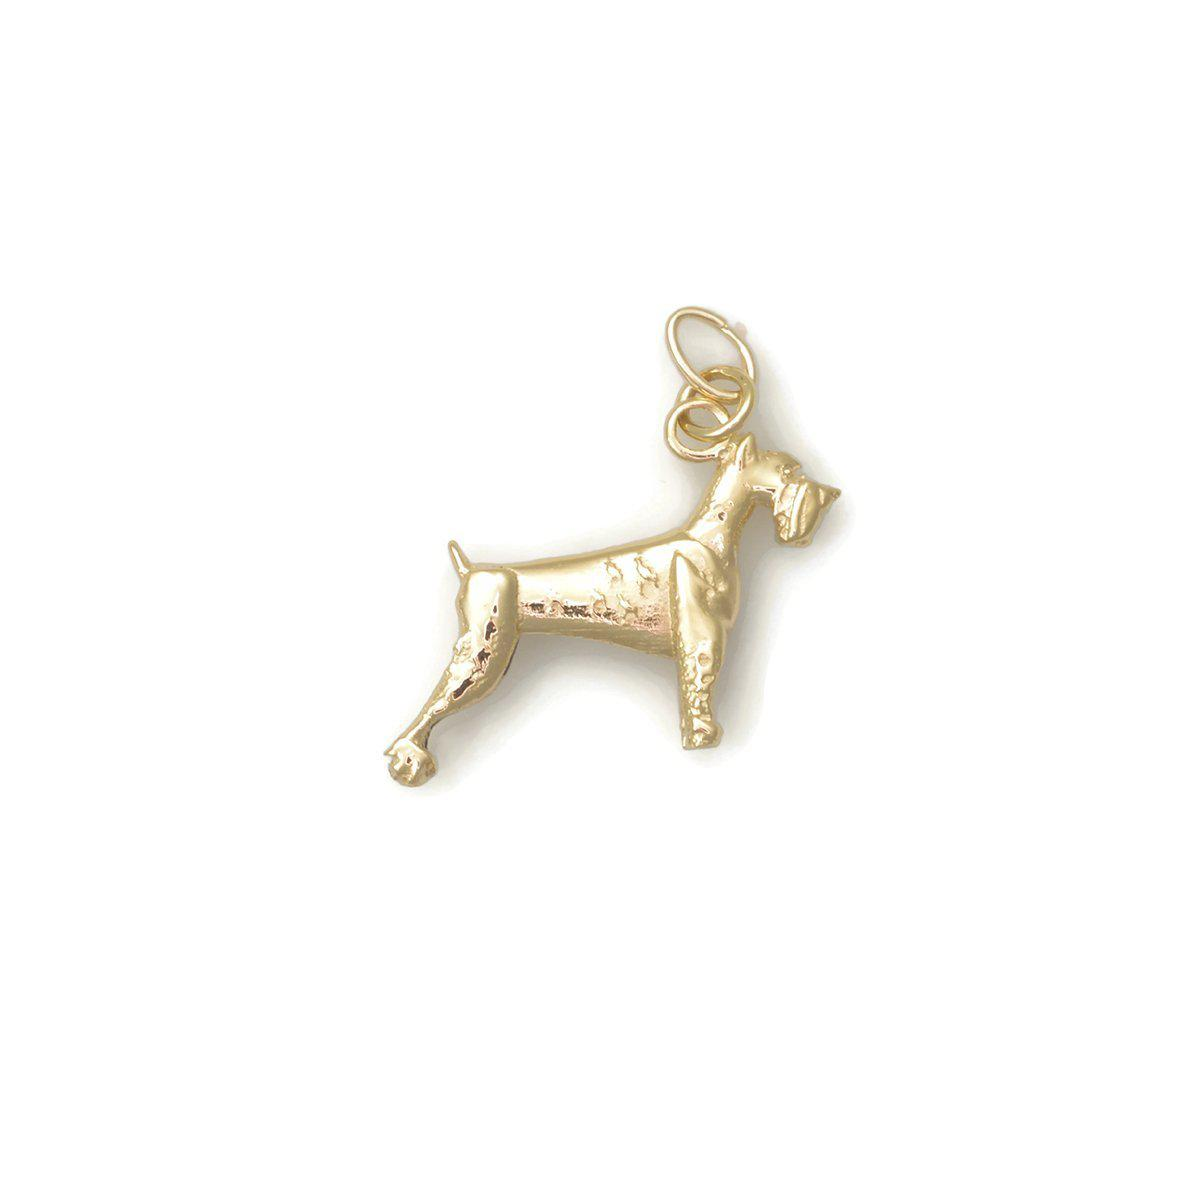 Donna Pizarro Designs 14kt Yellow Gold Sheltie Charm whW7KMDXxT